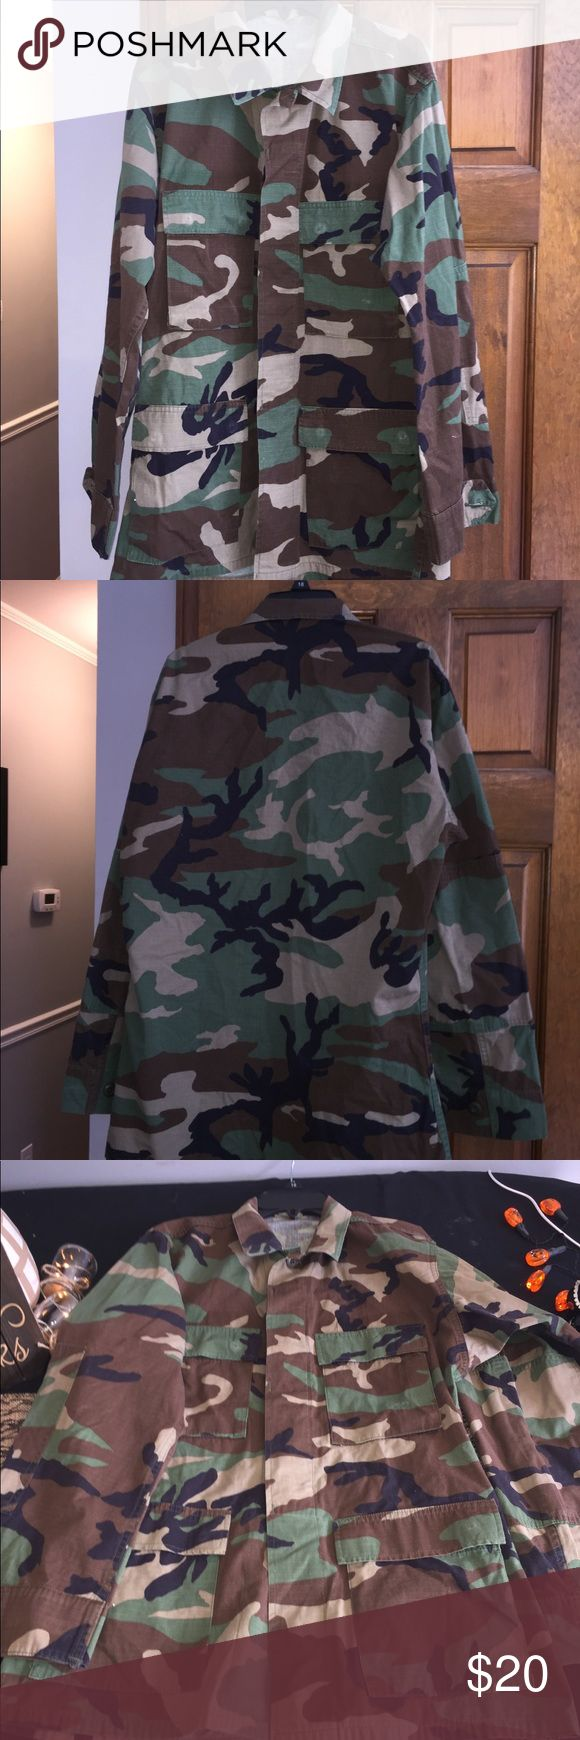 "Woodland Camo ASU Small Halloween Soldier Woodland Camo Army Service Uniform Shirt Size Small Regular. Height 67-71"" chest 33-37"". Shirts"